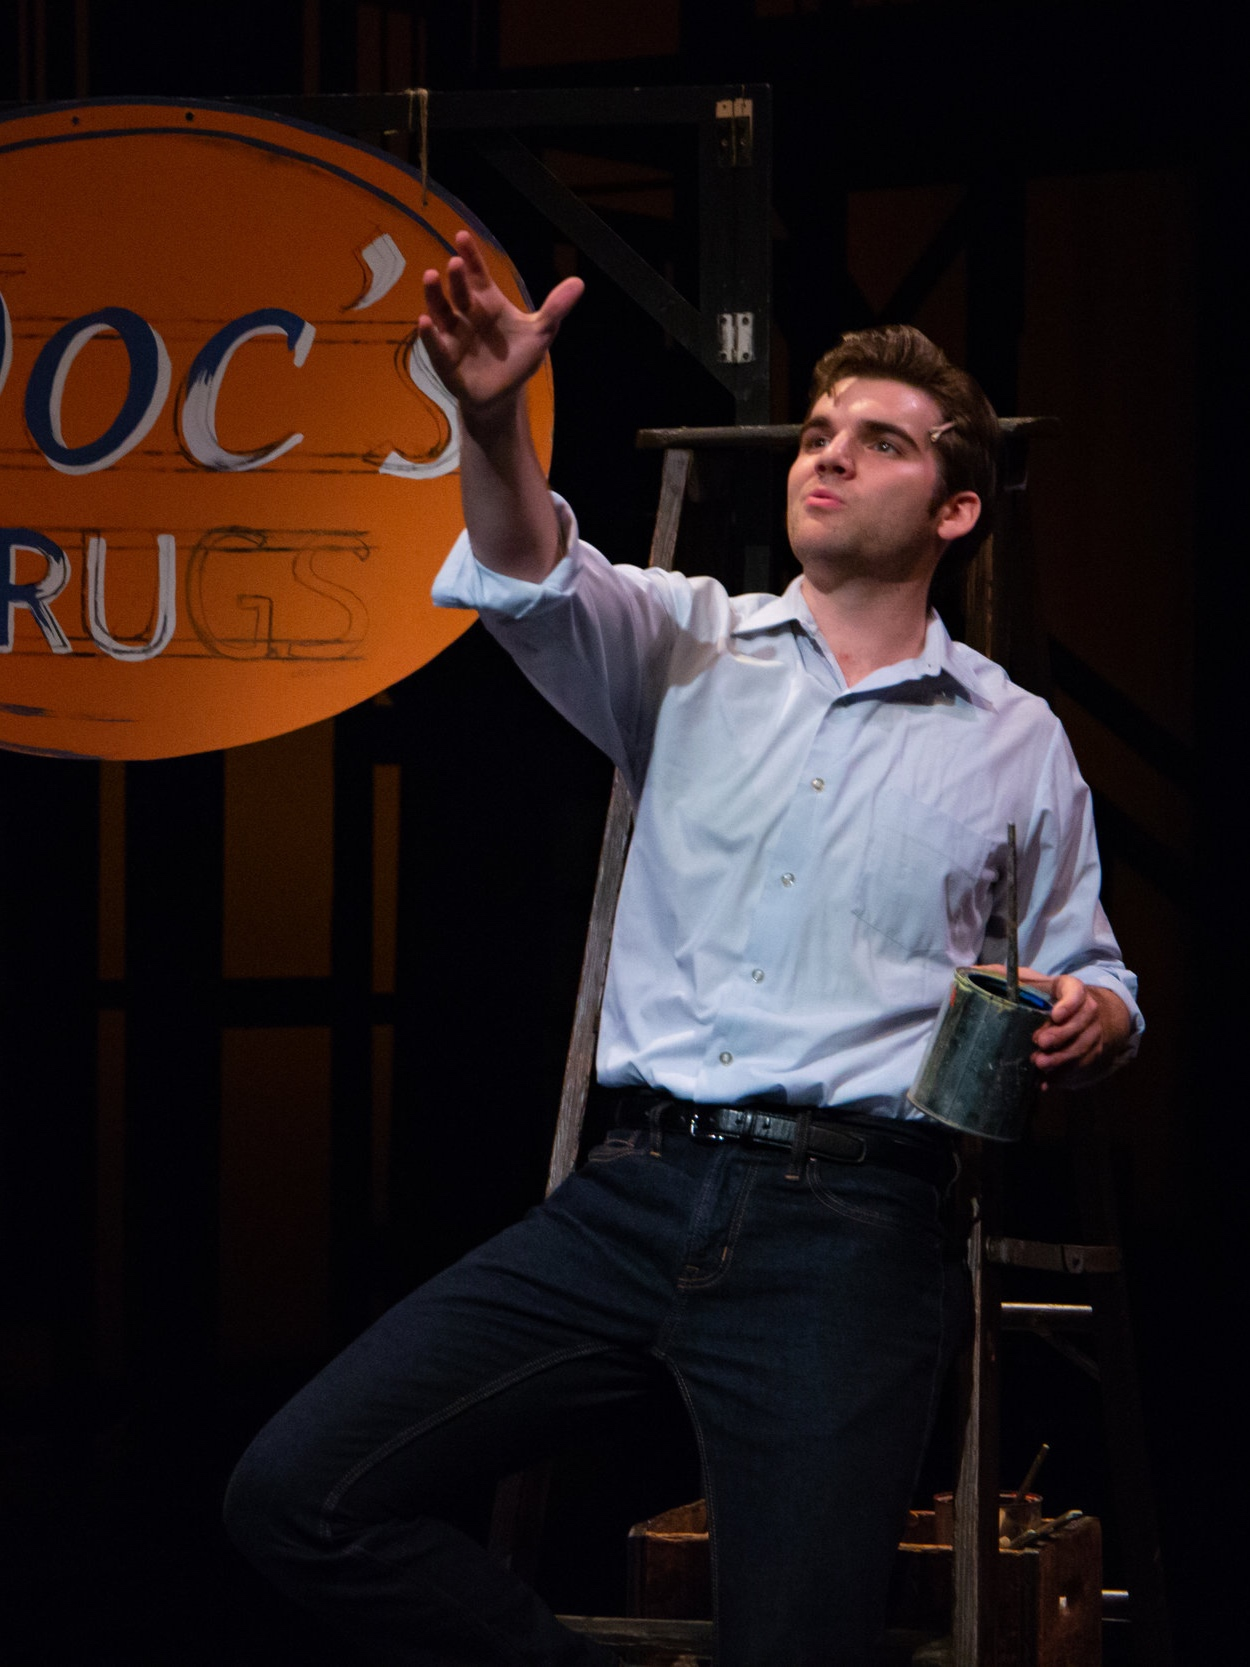 "- ""BEN LOHRBERG'S SINGING IS A REVELATION.""- Revue West Michigan""[LOHRBERG] SEALS THE DEAL WITH A CHARMING DEMEANOR THAT MAKES HIM SEEM JUST A LITTLE OLDER AND MORE MATURE THAN HIS TESTOSTERONE-DRIVEN BUDDIES.""- Encore Michigan""[LOHRBERG'S] LONGING AND LOVE ARE PALPABLE IN HIS VOICE ALONE, PARTICULARLY HIS EXQUISITE HIGH NOTES.""- Revue West Michigan""LOHRBERG OFFERS NOT ONLY GOOD LOOKS AND A STRONG, EXPRESSIVE SINGING VOICE.""- Encore Michigan""THEIR [BEN LOHRBERG & SARA ORNELAS'] STRENGTHS TOGETHER MAKE FOR AN EXTRAORDINARY UNION AND A RELATIONSHIP THAT EMERGES, EVOLVES AND ENDS WITH GREAT EMOTION. AND, MIRACULOUSLY, THEY ARE CONVINCING TEENAGERS AS WELL AS TREMENDOUSLY SOPHISTICATED.""- Revue West Michigan""[LOHRBERG & ORNELAS'] VOICES BLEND BEAUTIFULLY.""- Encore Michigan"